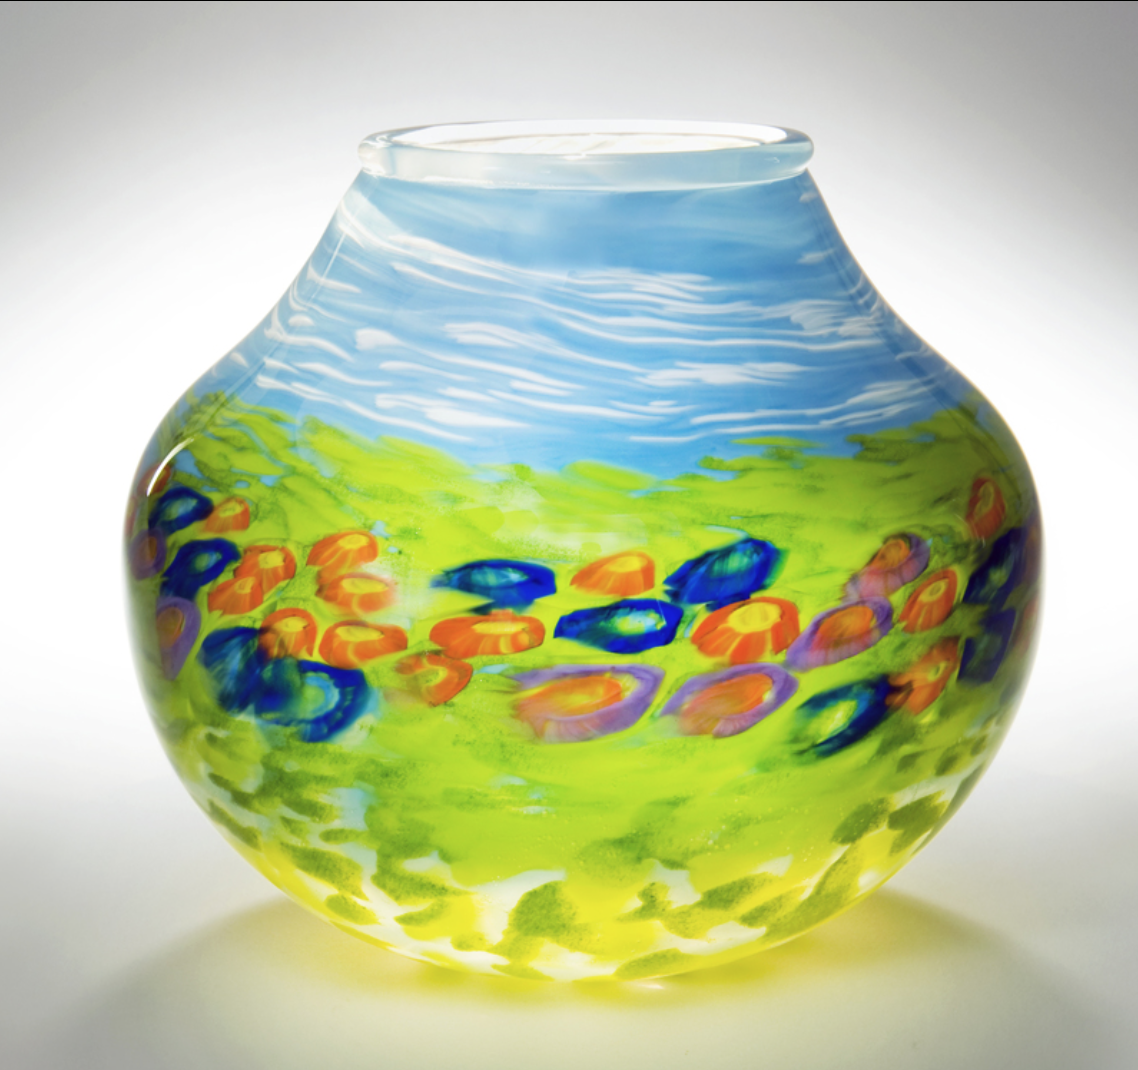 Dana Robbins - http://www.robbinsranch.comFurnace glass. Hollow blown and solid sculpted forms. Architectural, decorative and functional art.